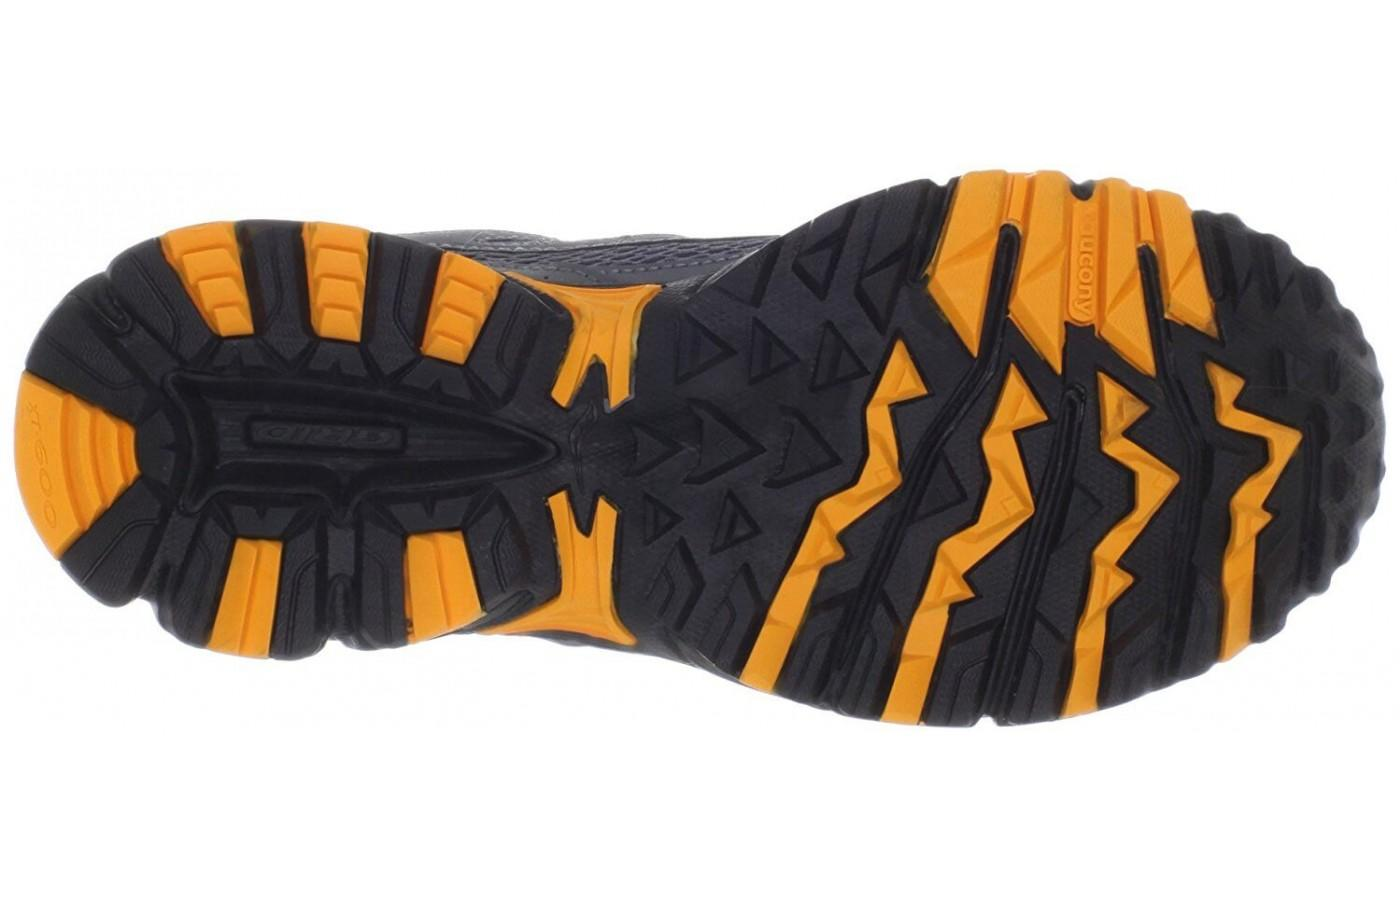 This outsole give the runners protection and grip, but keeps it on the light side.